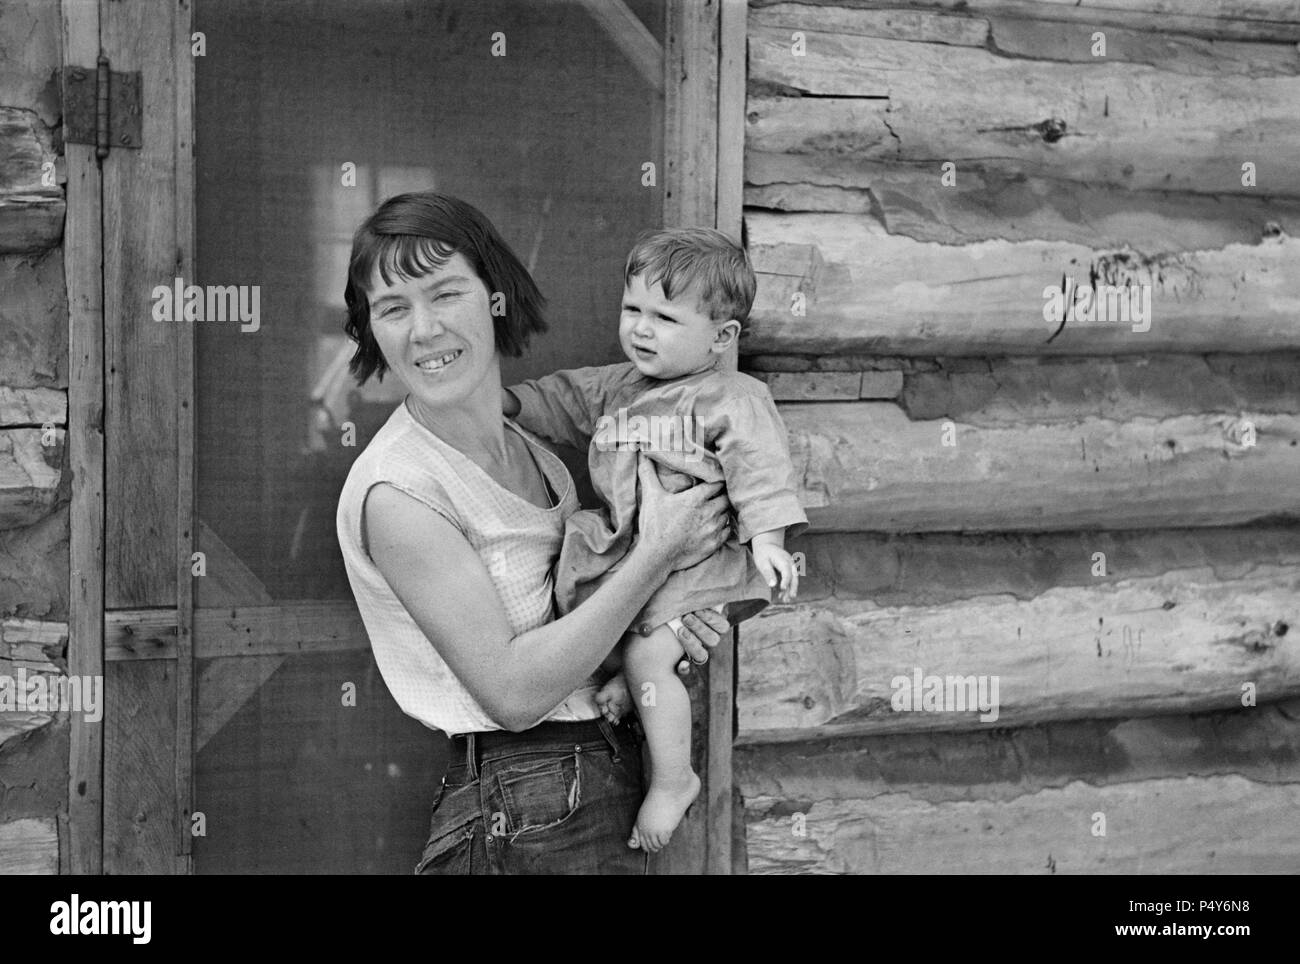 Mrs. Huravitch and Youngest Son, Williams County, North Dakota, USA, Russell Lee, U.S. Resettlement Administration, September 1937 - Stock Image